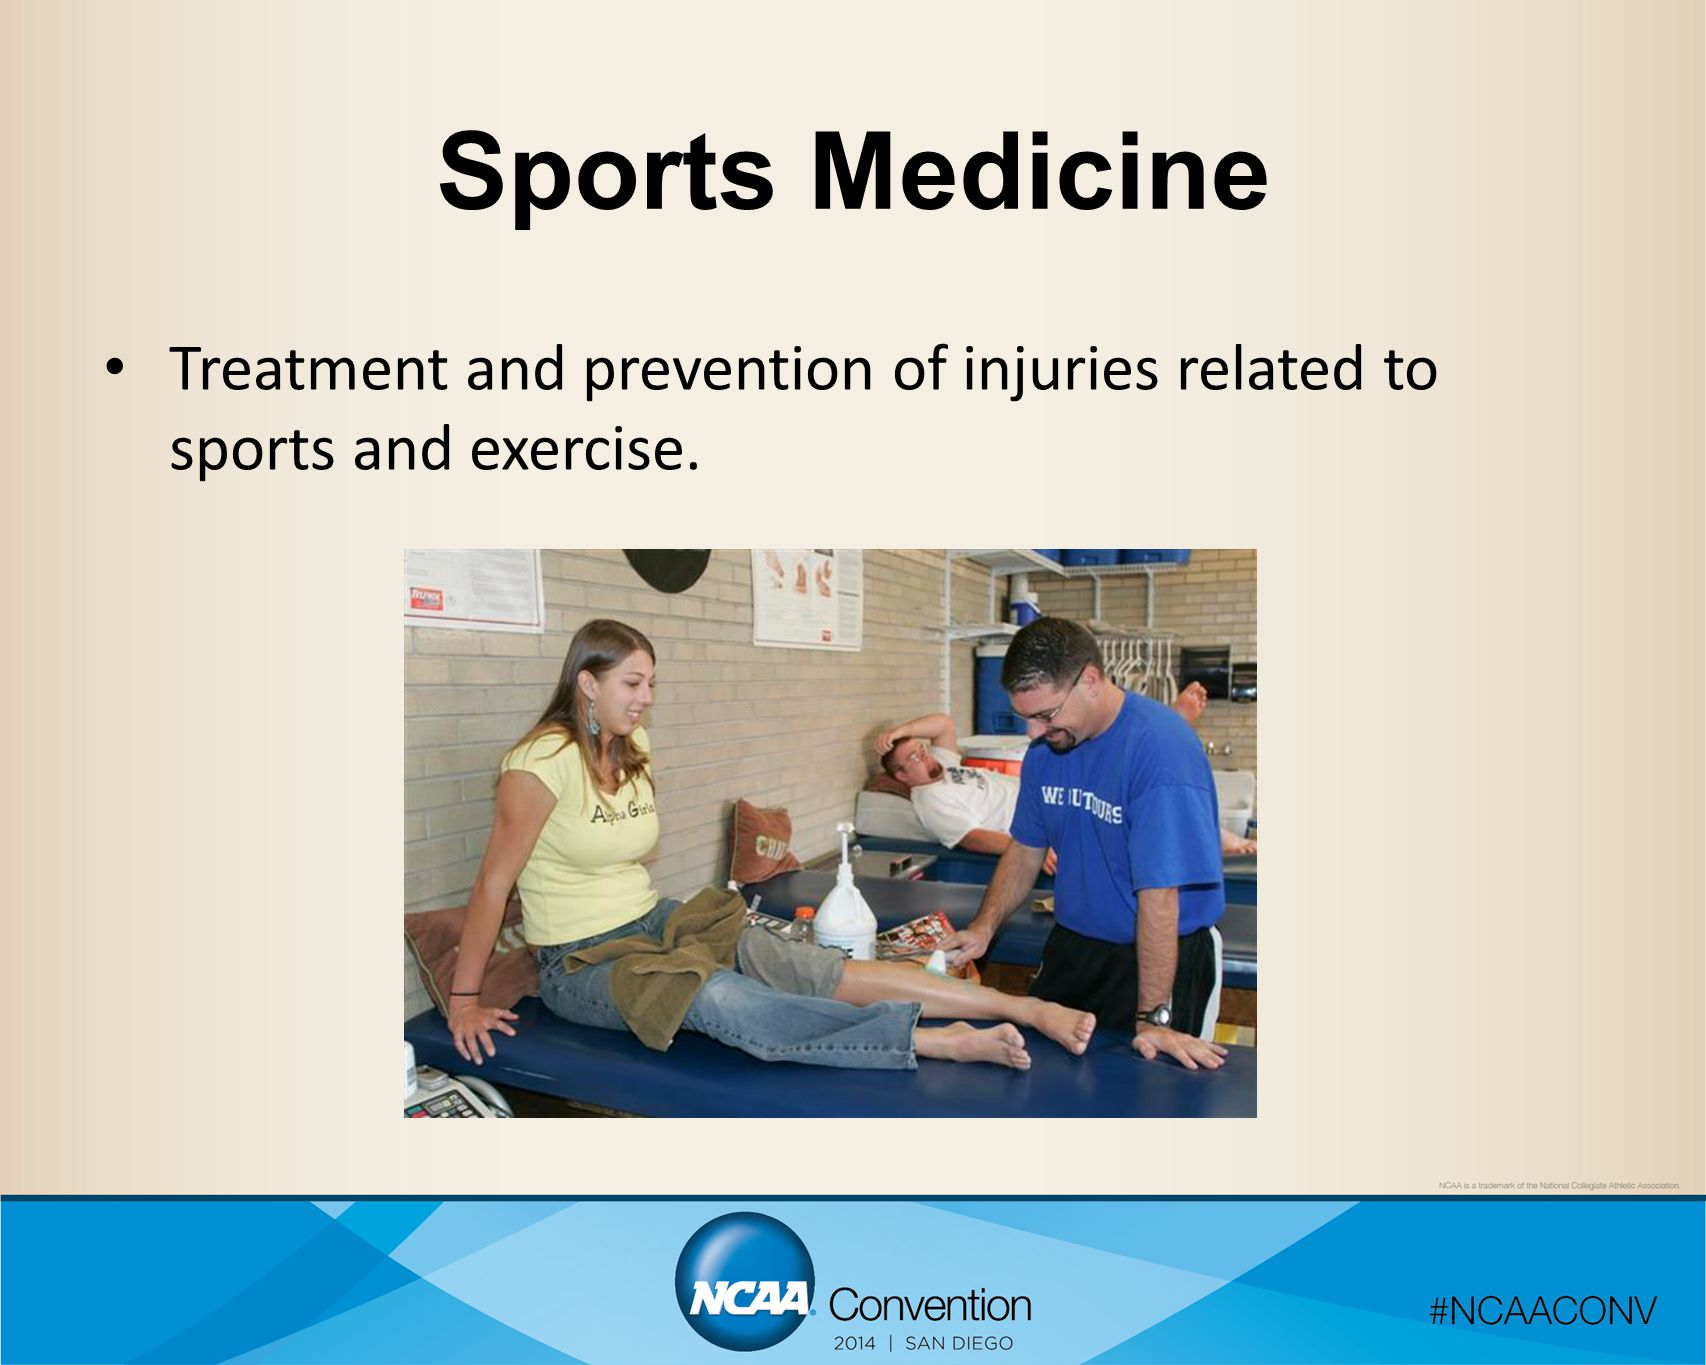 Sports Medicine Treatment and prevention of injuries related to sports and exercise.